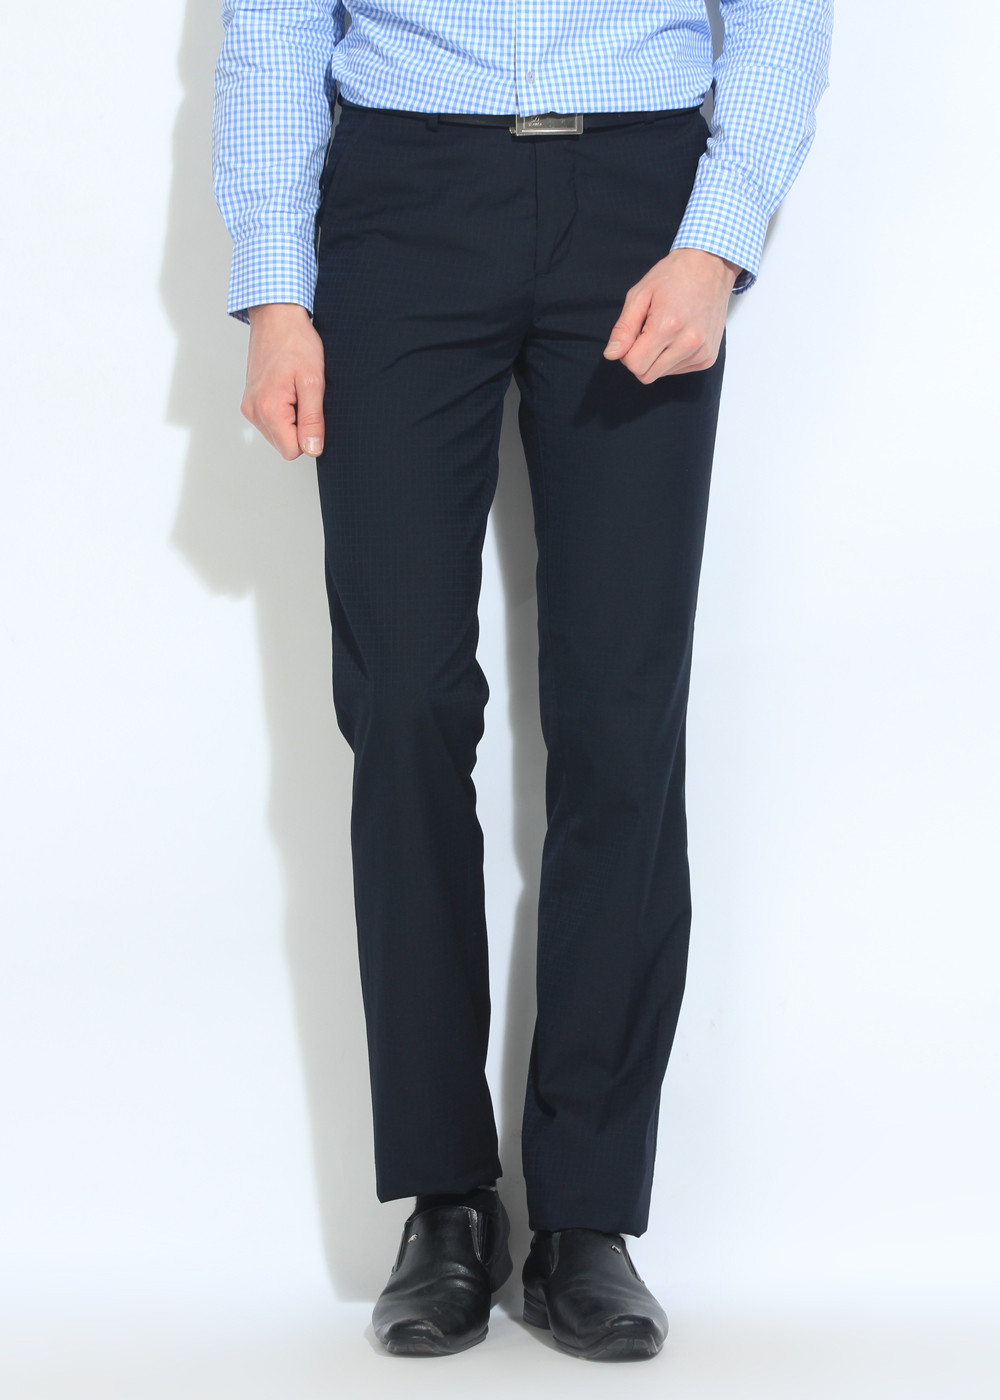 London Bridge Slim Fit Men's Dark Blue Trousers